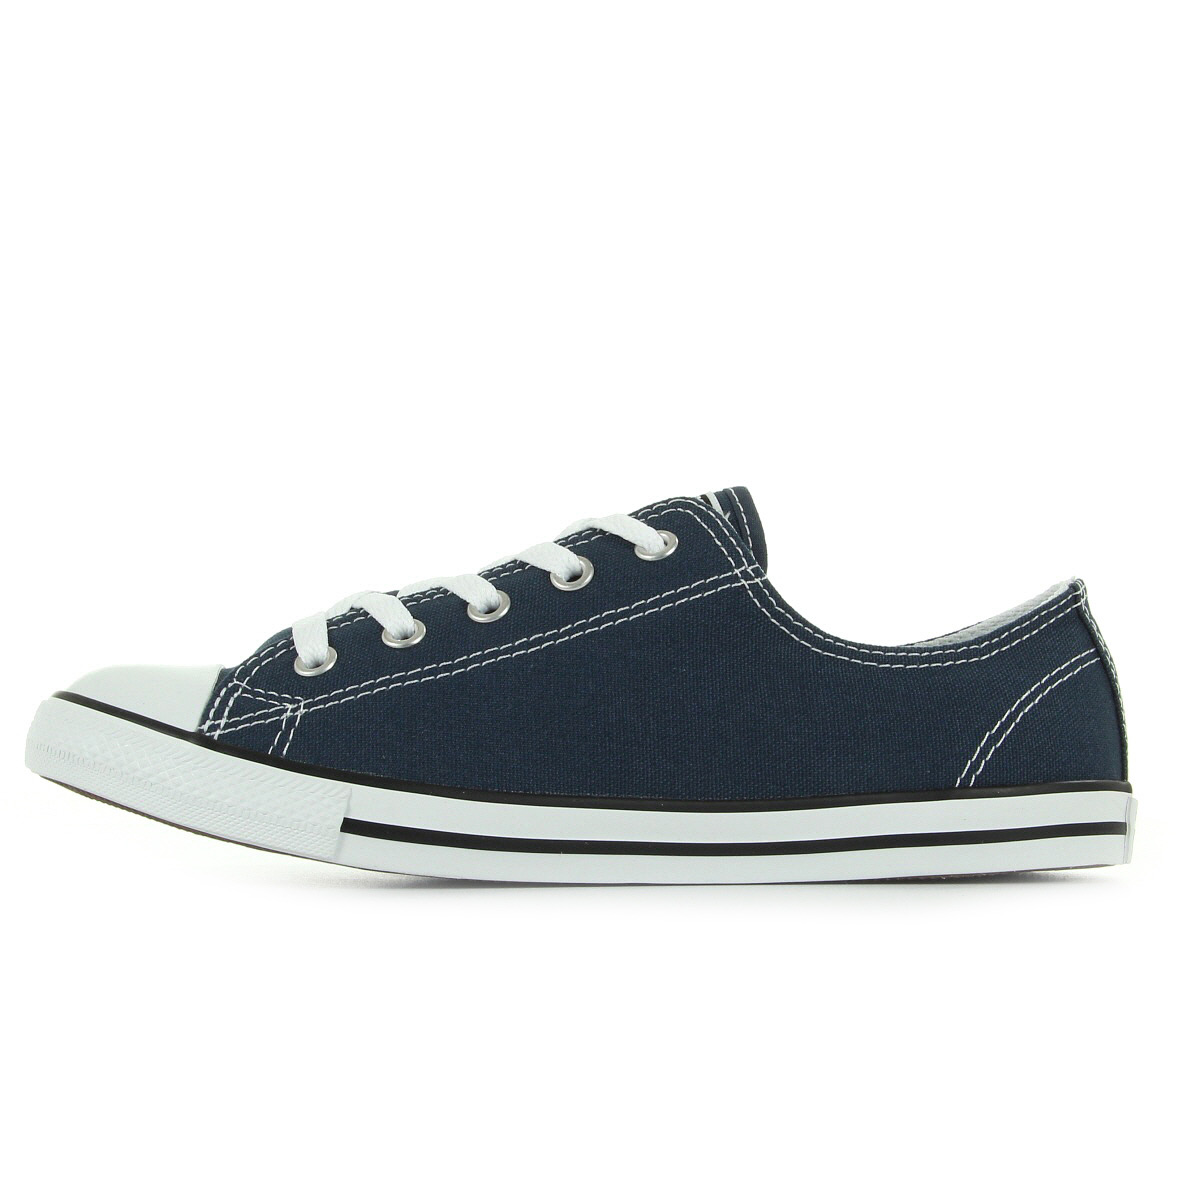 Converse CT Dainty ox 537649, Baskets mode femme